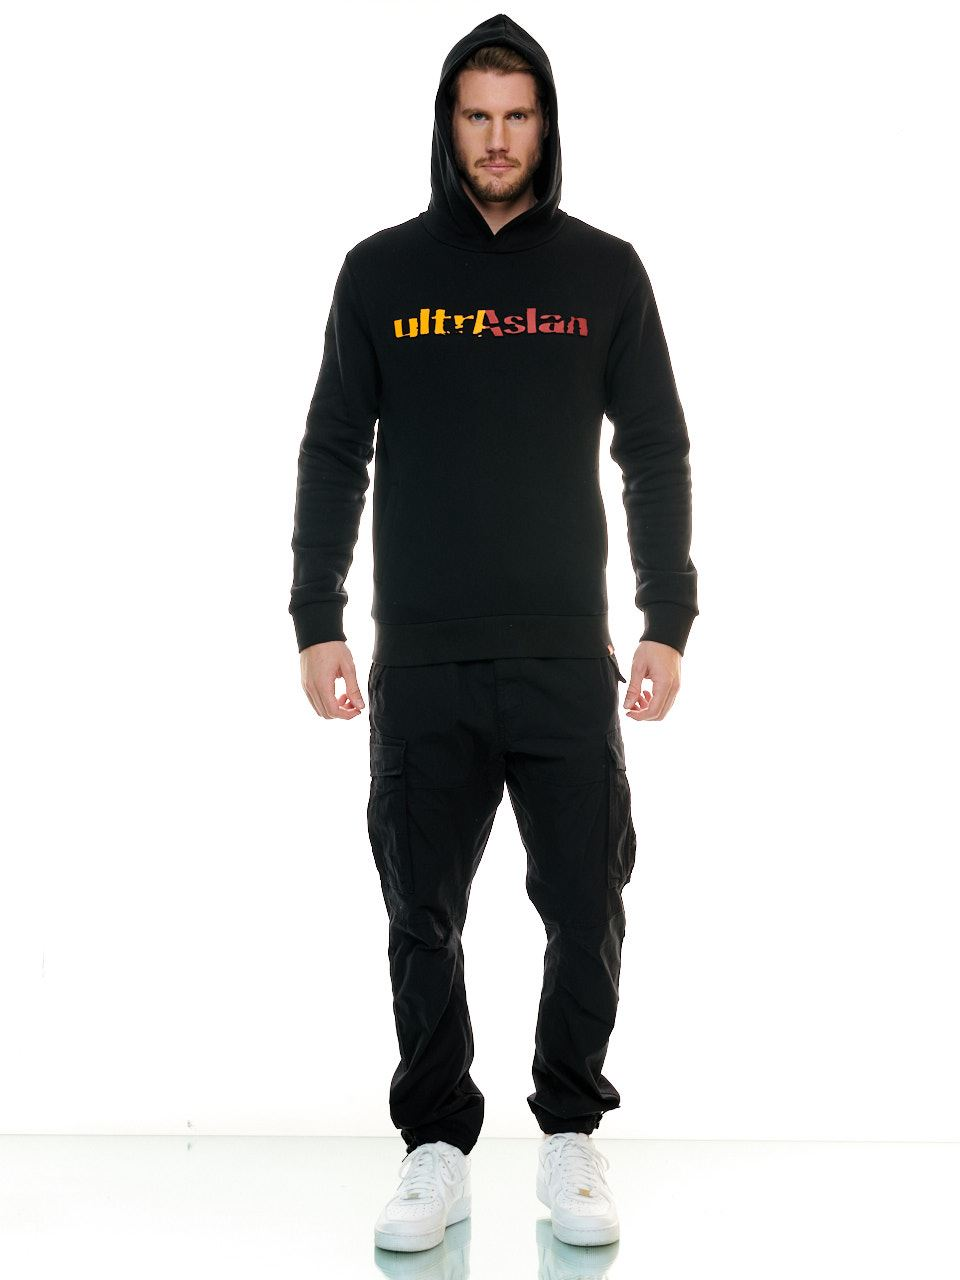 ultrAslan Sweatshirt E202248